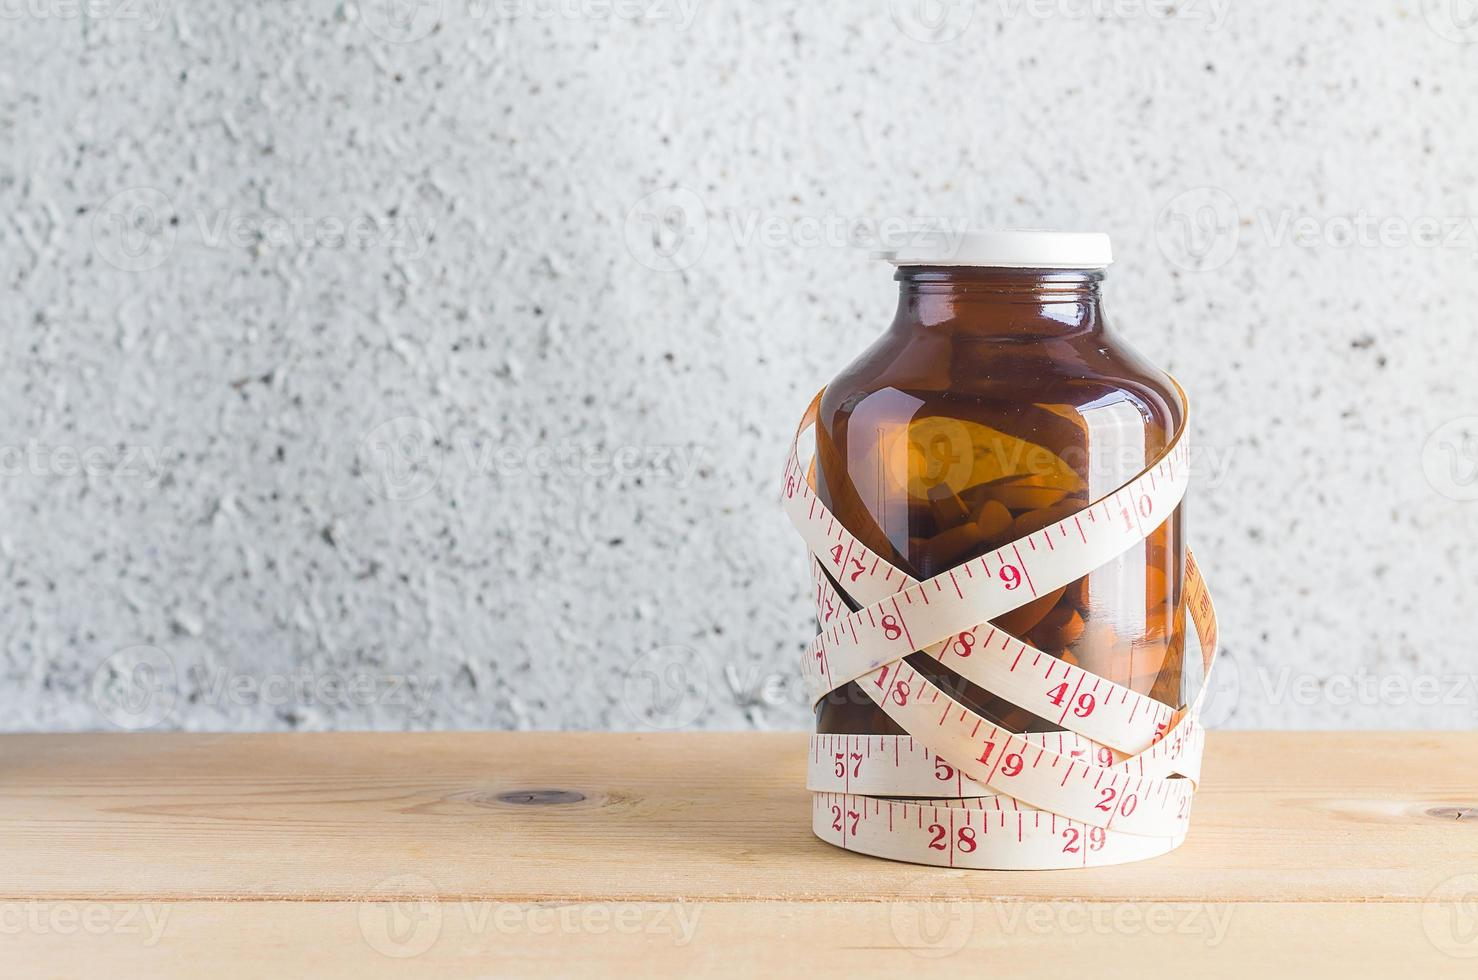 Medicine with measurement tape on wood background photo